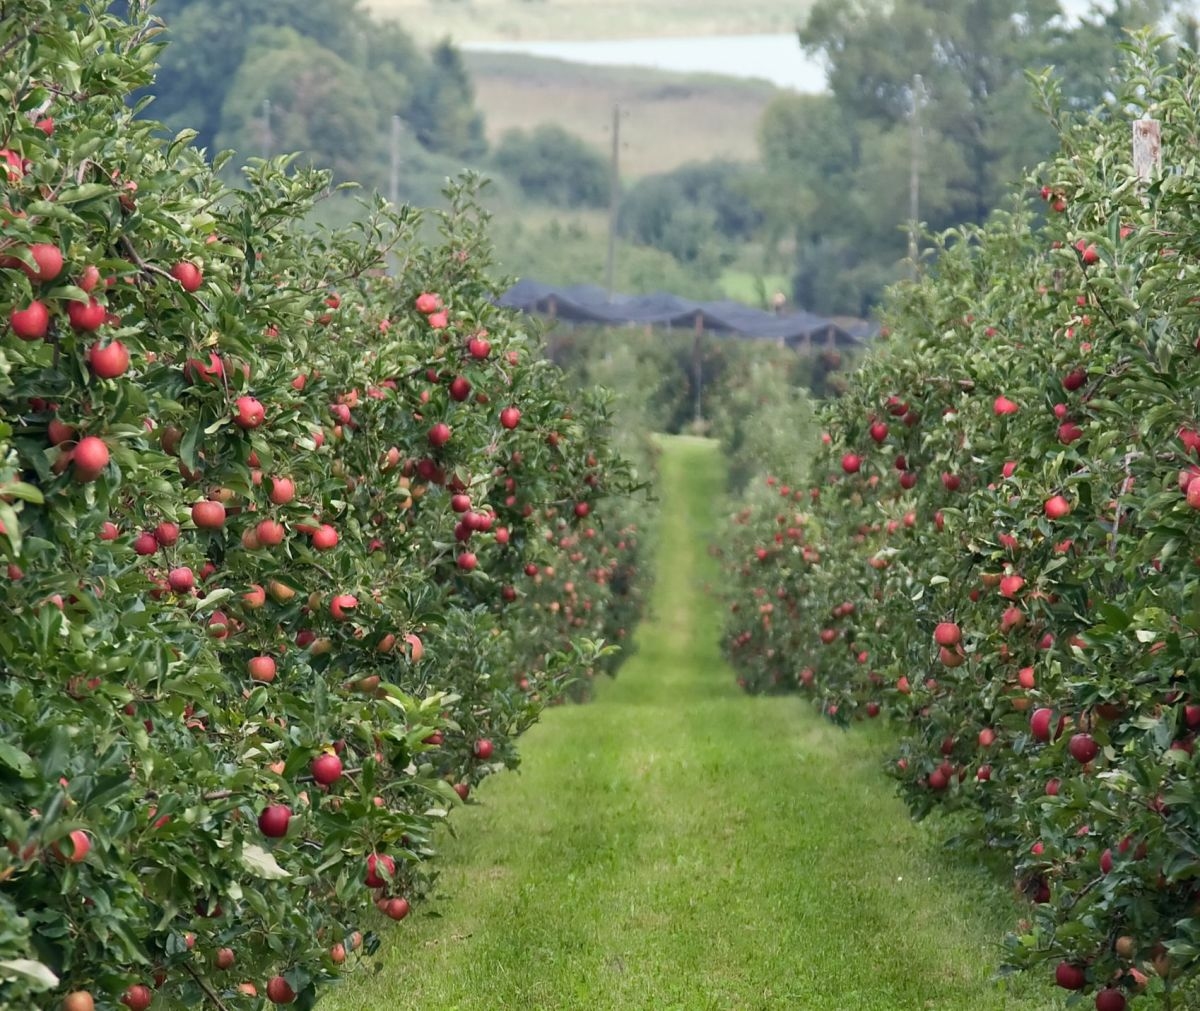 Seen here is a local orchard in its natural climate sits atop a foggy mountain yielding a bountiful harvest for the upcoming fall and winter.